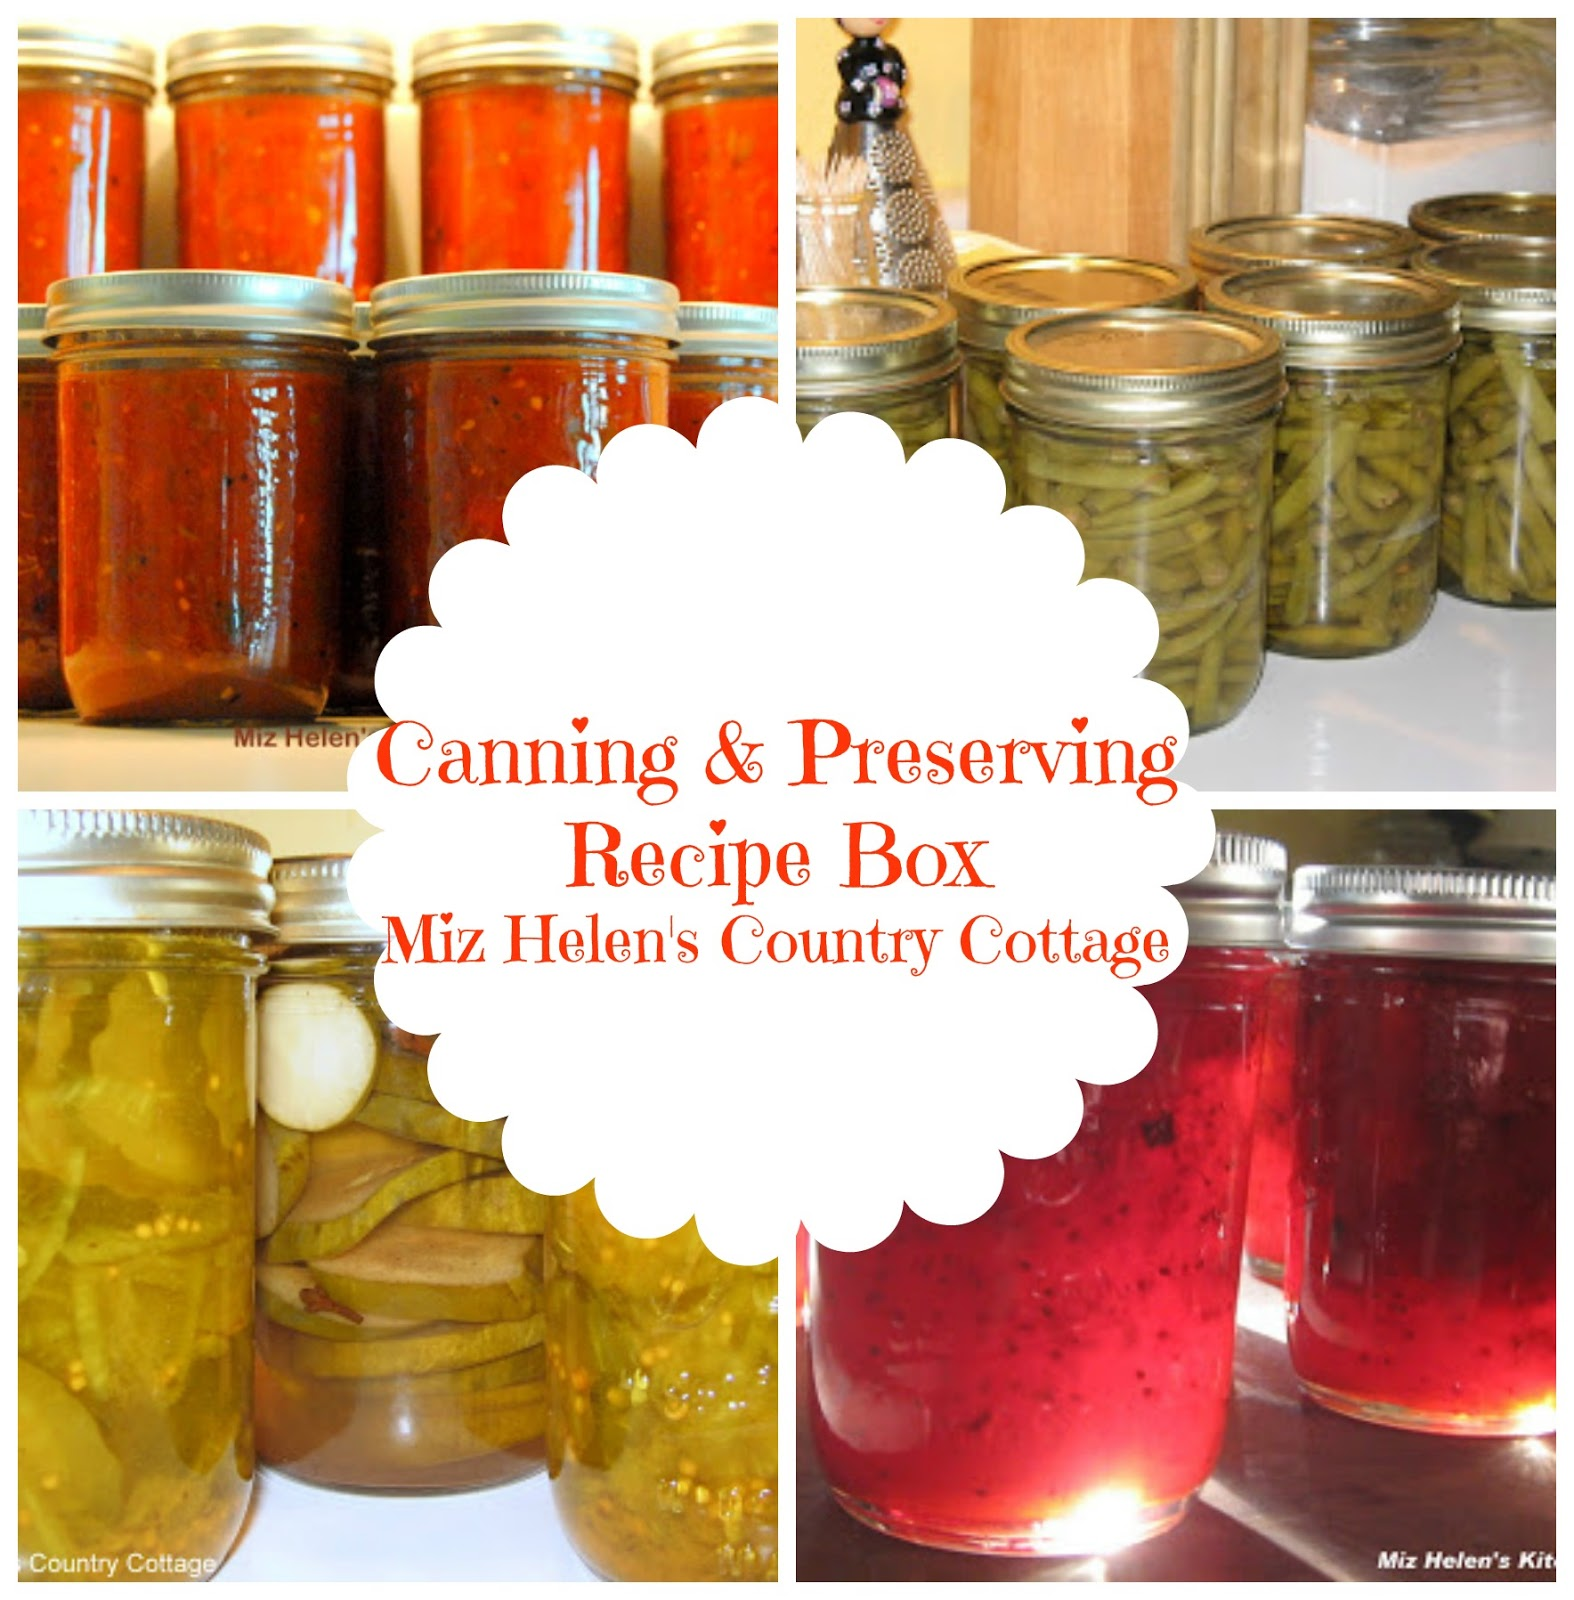 Miz helens country cottage canning and preserving recipe box canning and preserving recipe box at miz helens country cottage forumfinder Choice Image